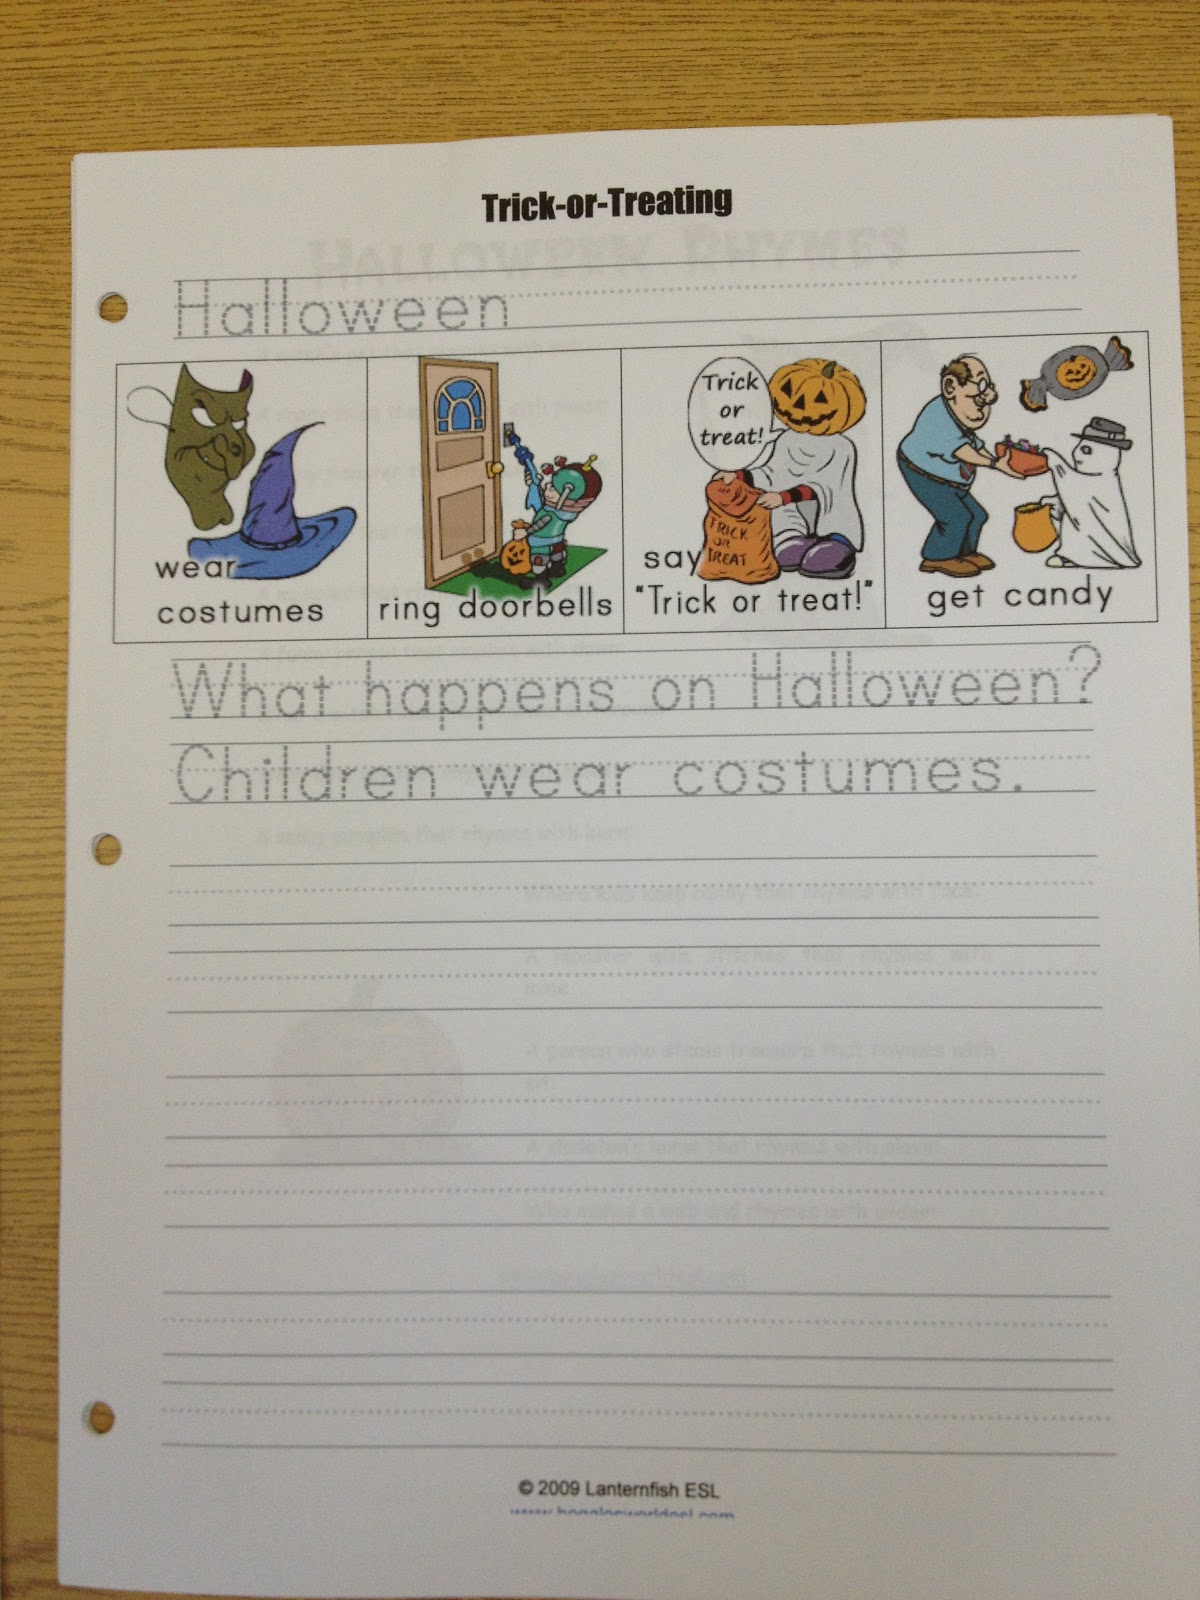 this worksheet is from boggles world esl they have a ton of great worksheets for halloween as well as all the other major holidays - Bogglesworld Halloween